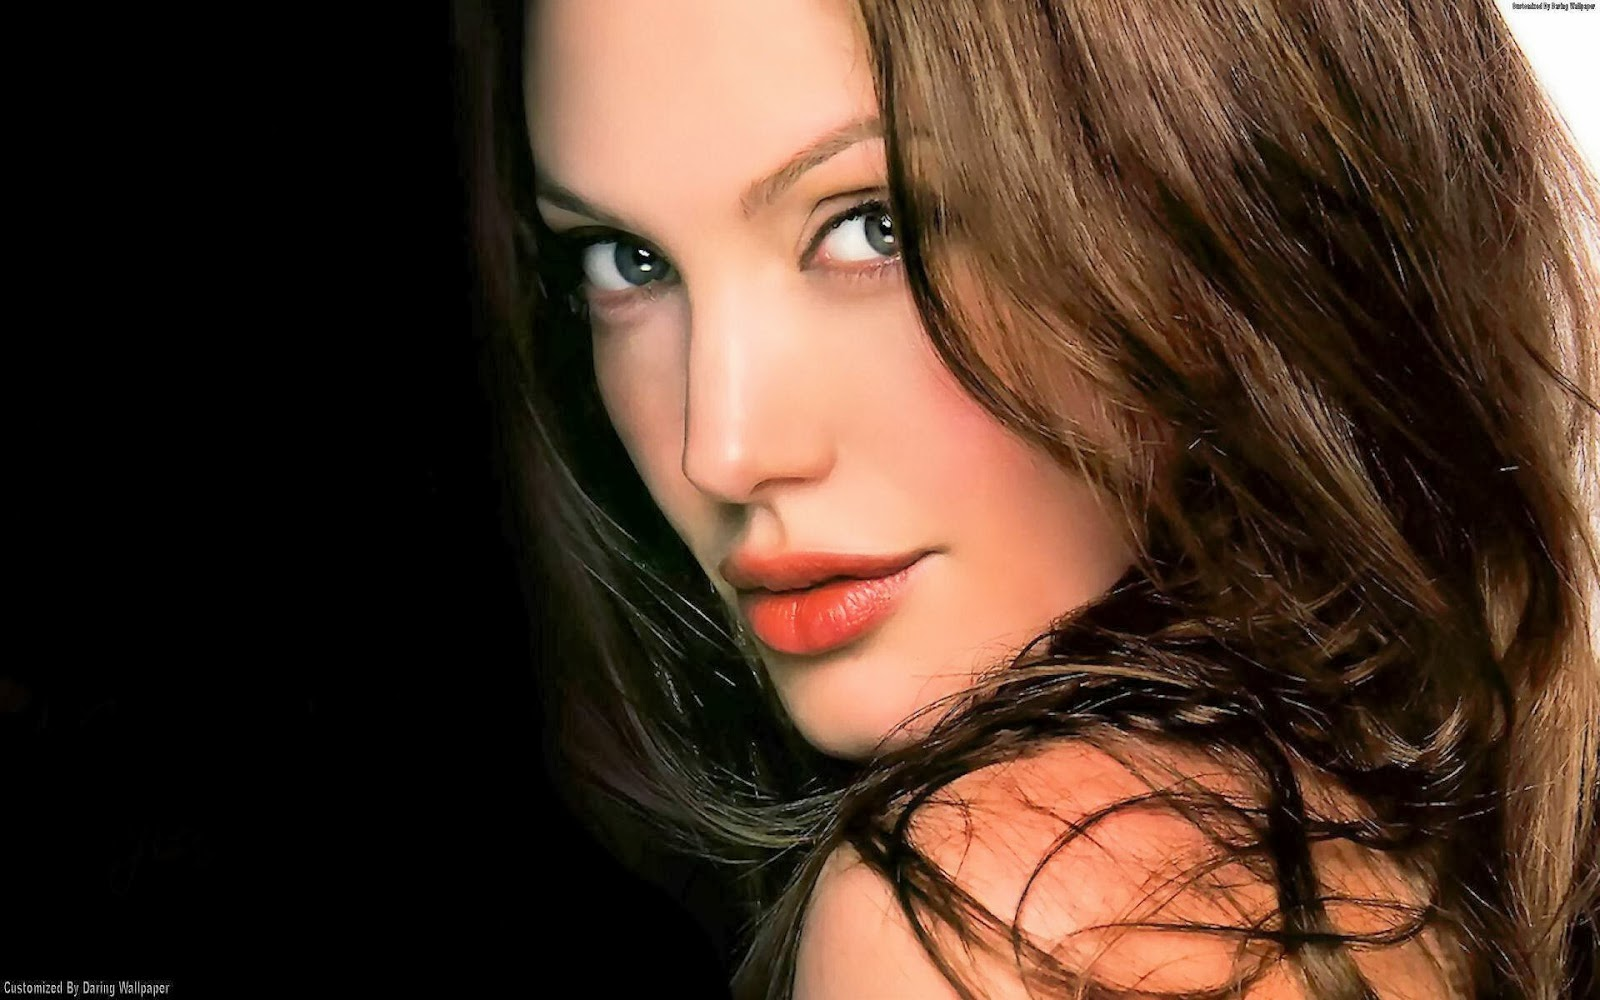 Angelina Jolie Hd Wallpaper,Images,Pics - Hd Wallpapers Blog-7154